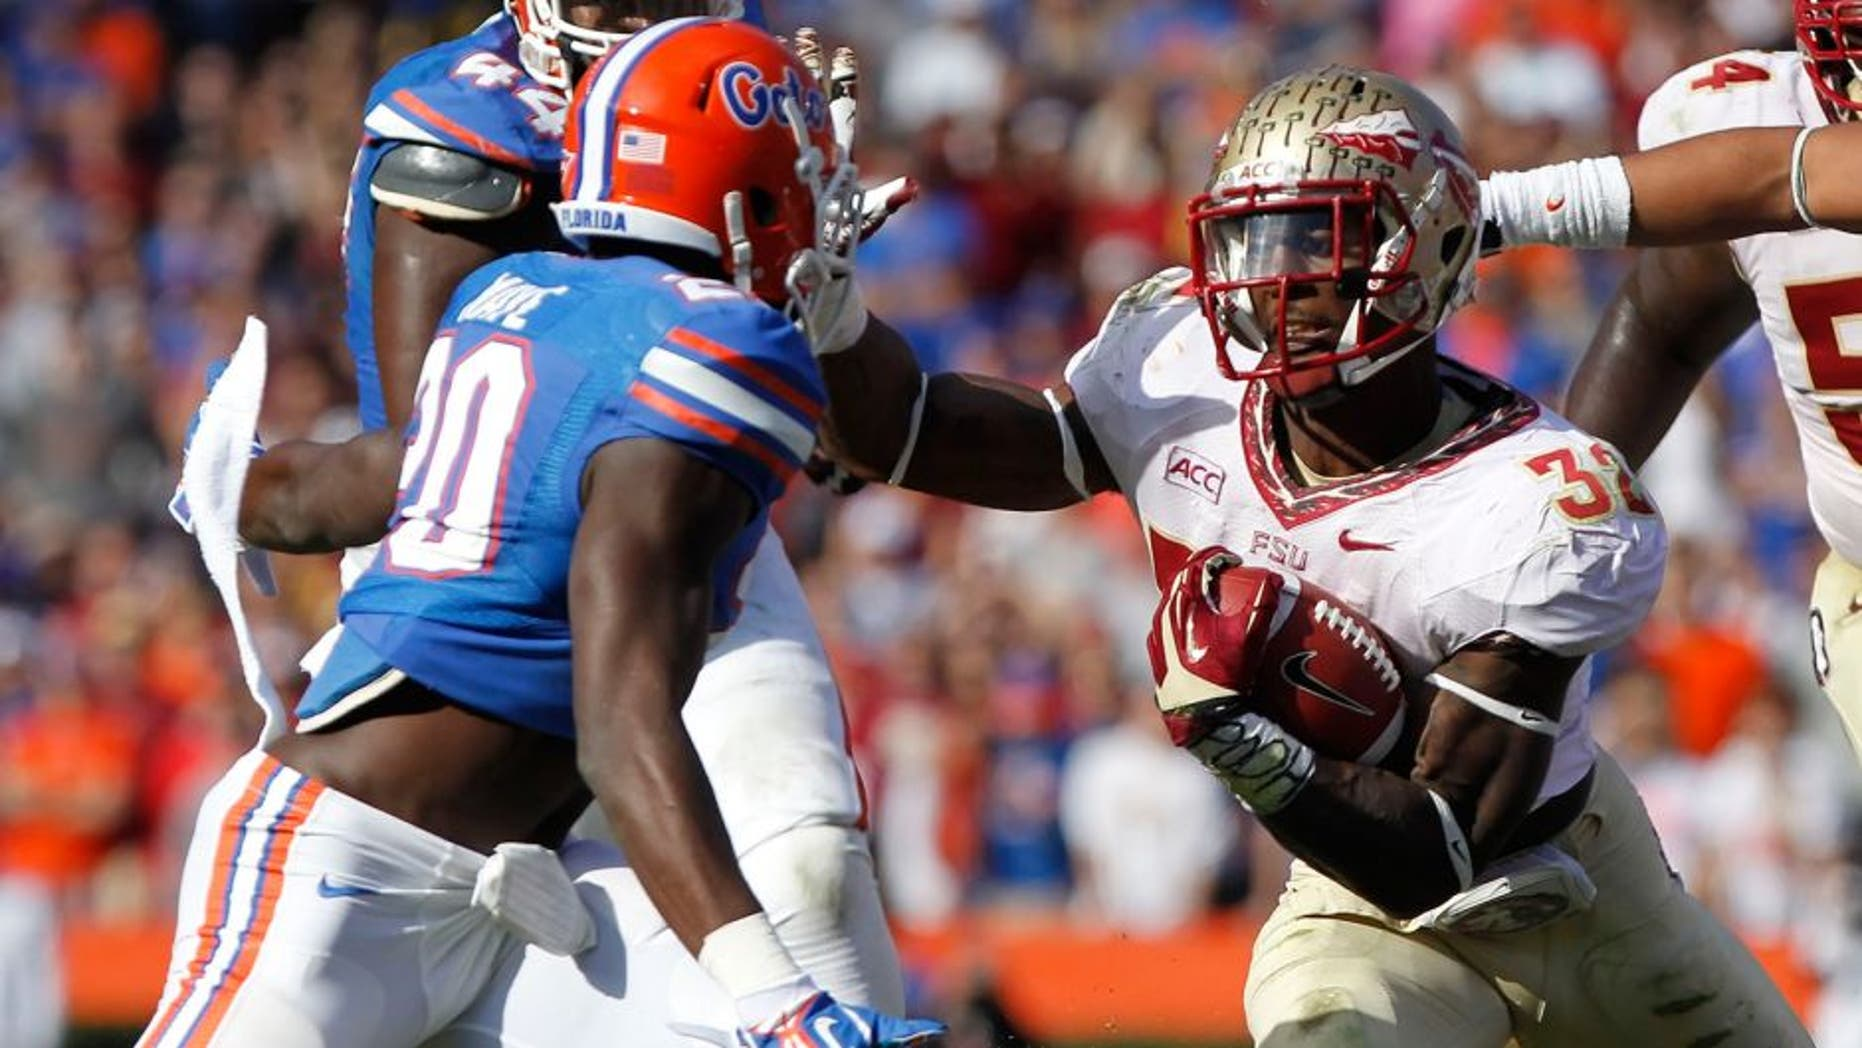 Nov 30, 2013; Gainesville, FL, USA; Florida State Seminoles running back James Wilder Jr. (32) runs with the ball as Florida Gators defensive back Marcus Maye (20) defends during the second half at Ben Hill Griffin Stadium. Florida State Seminoles defeated the Florida Gators 37-7. Mandatory Credit: Kim Klement-USA TODAY Sports